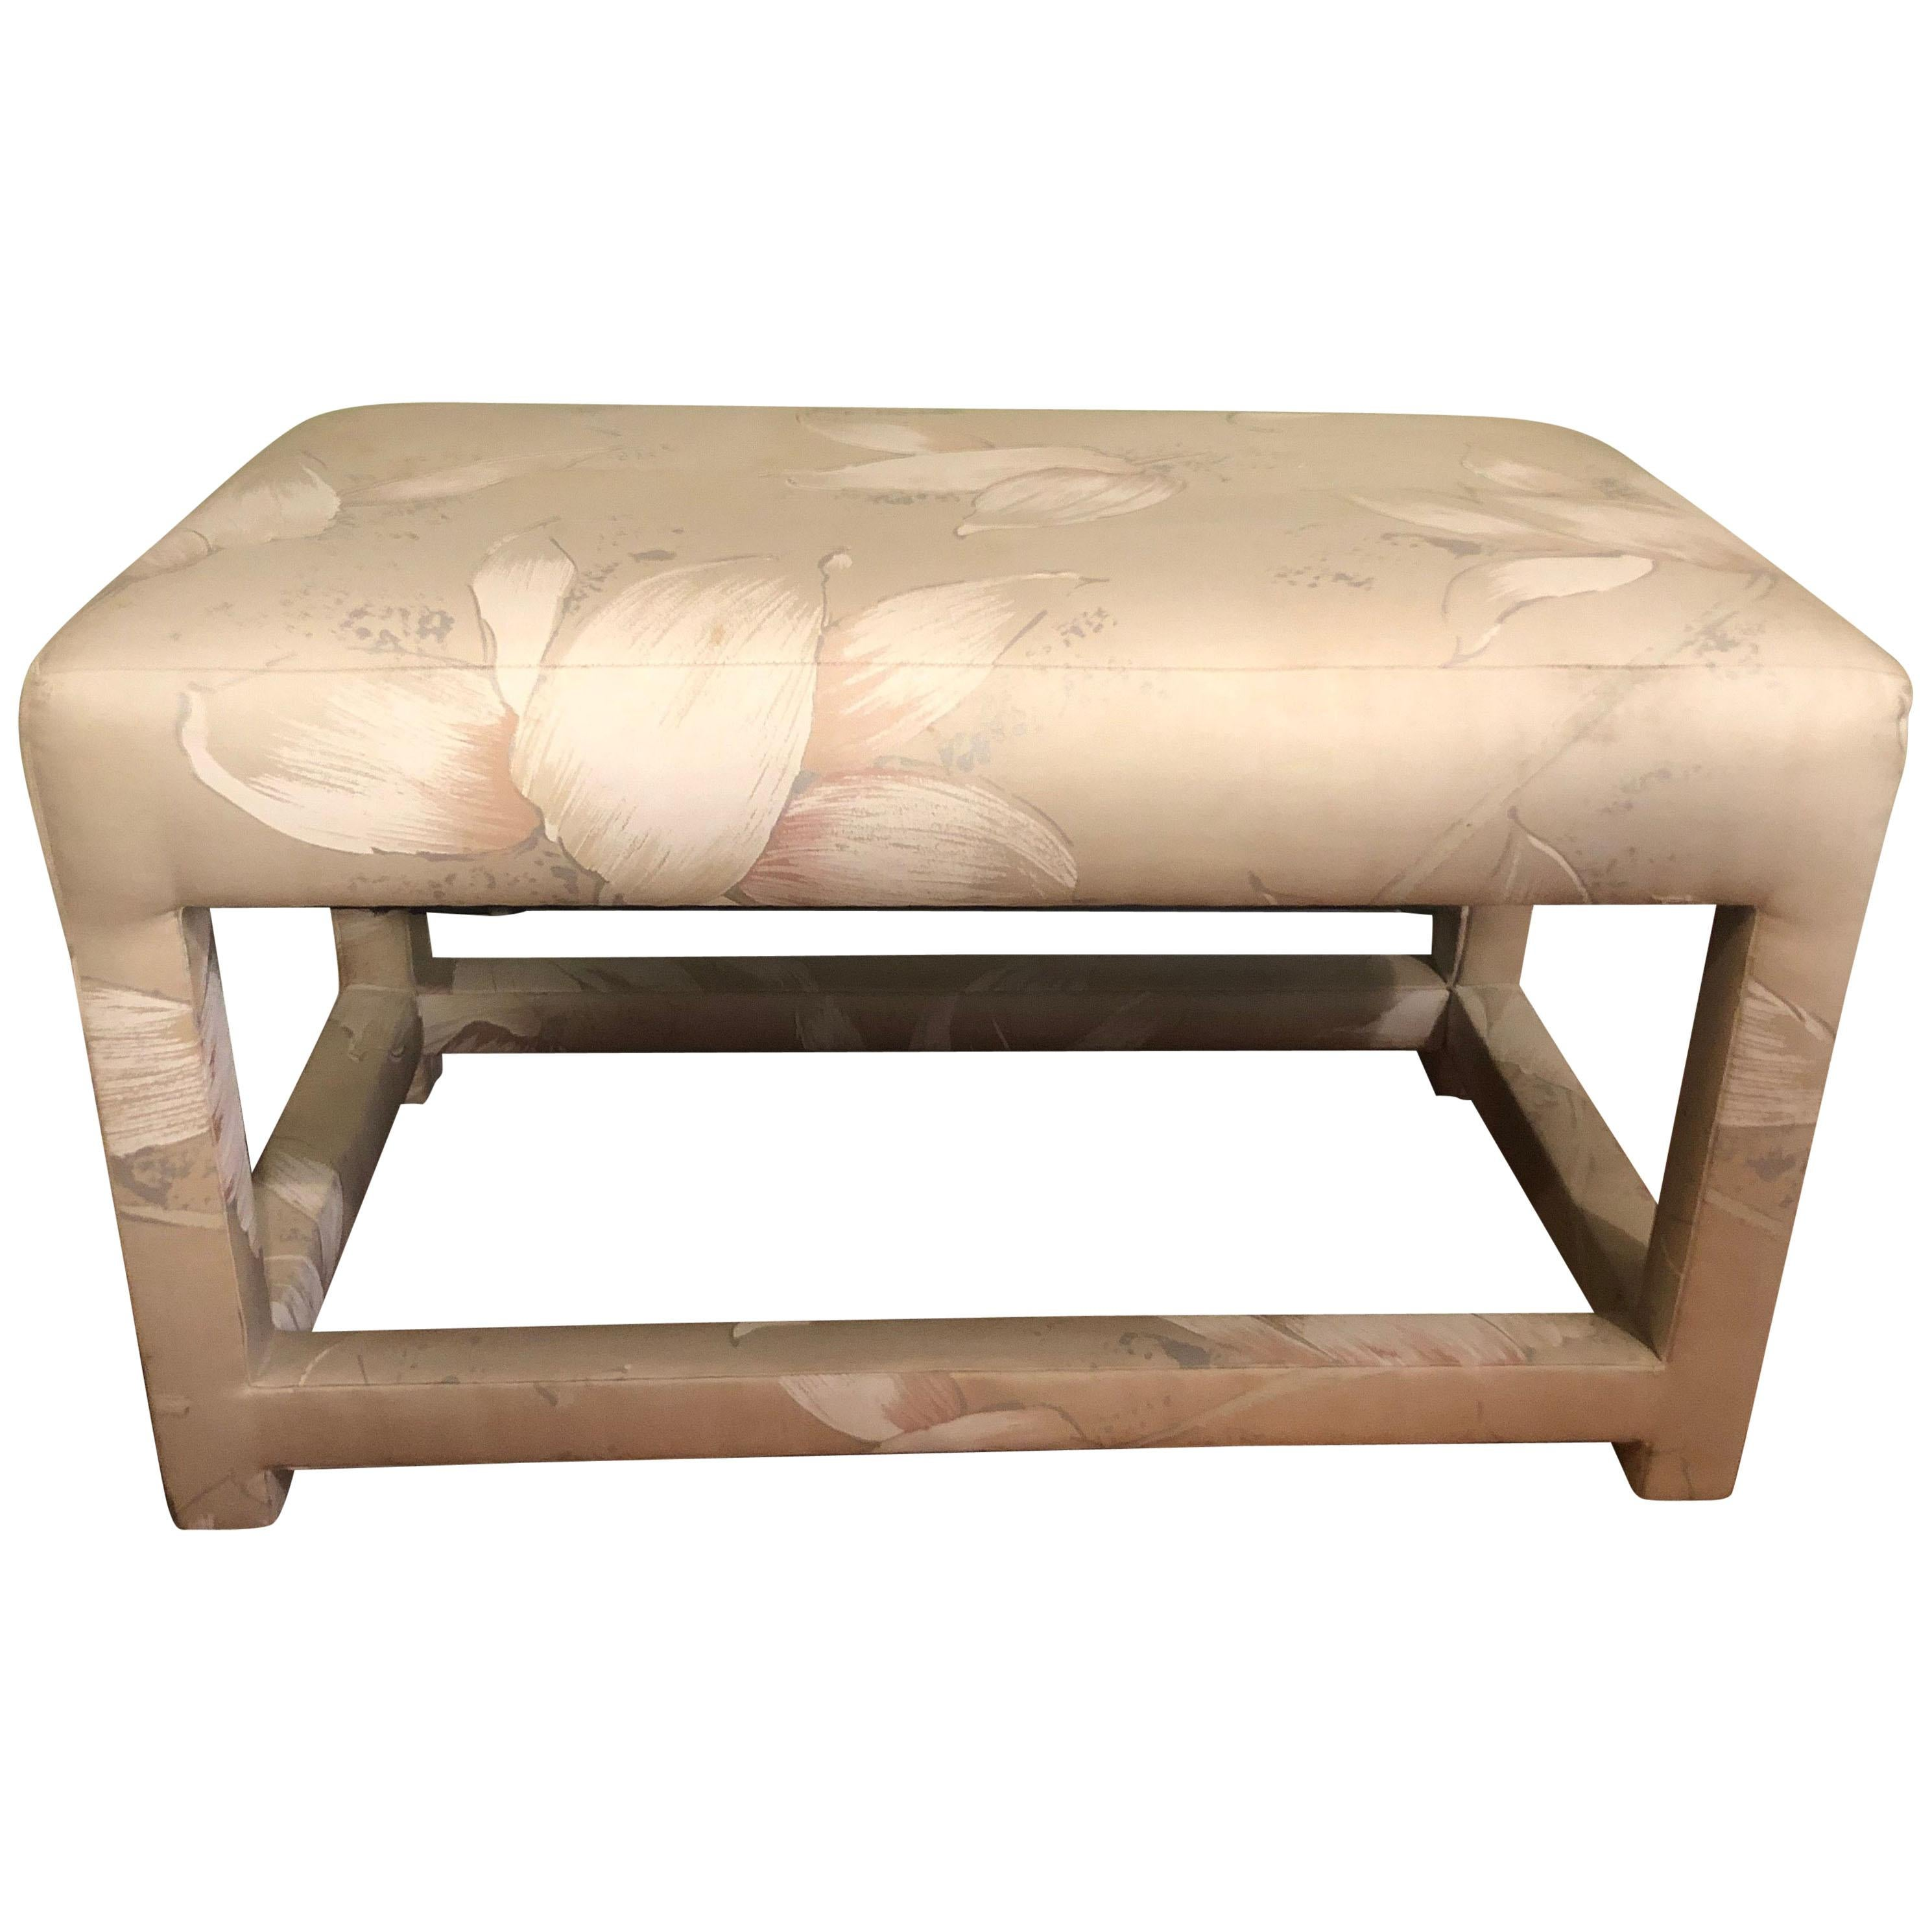 Milo Baughman Parsons Bench or Footstool